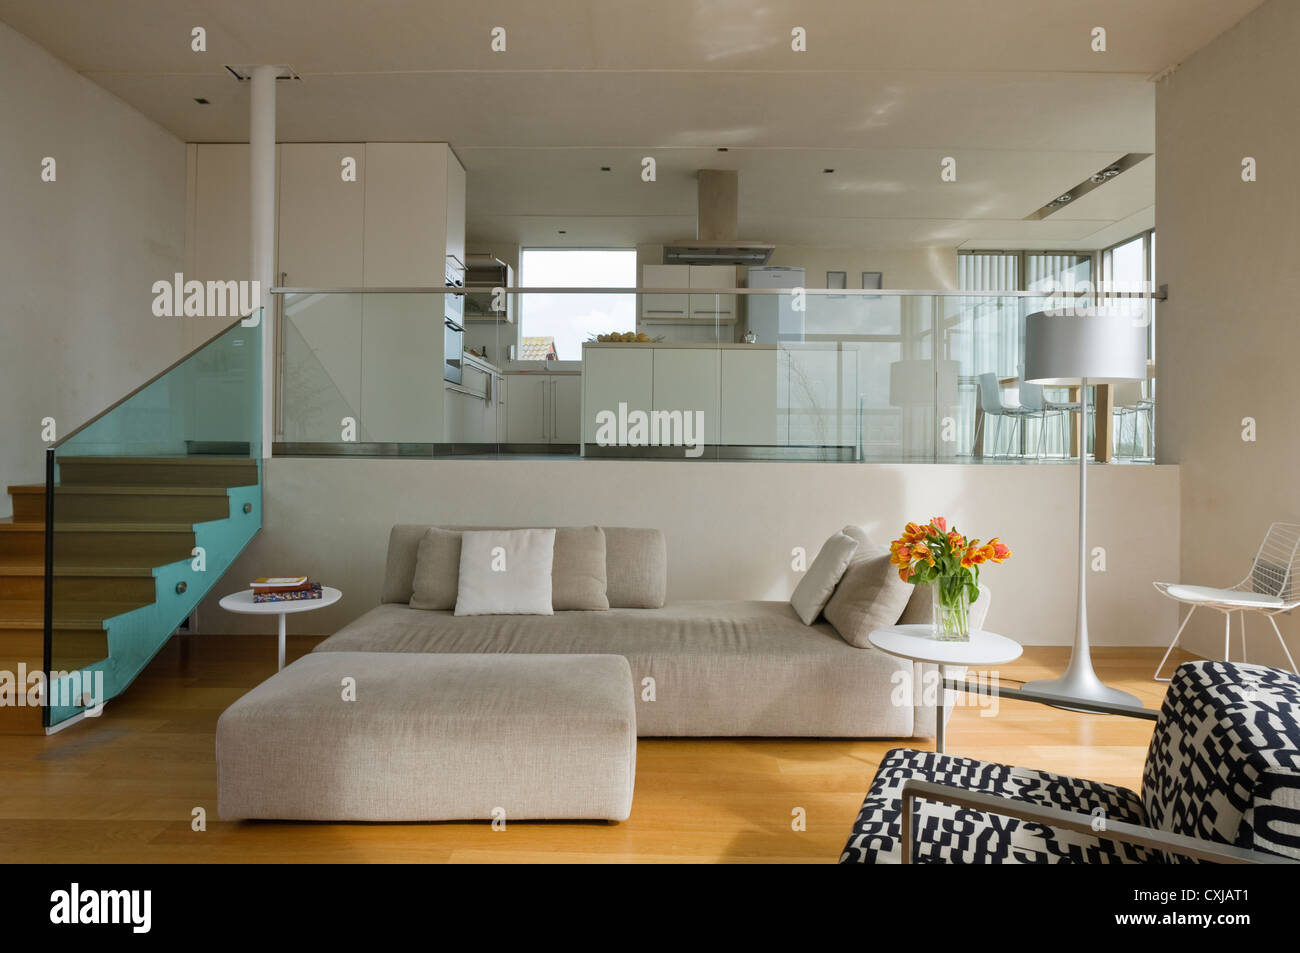 Split level open plan living room and kitchen stock photo for Split level open floor plan